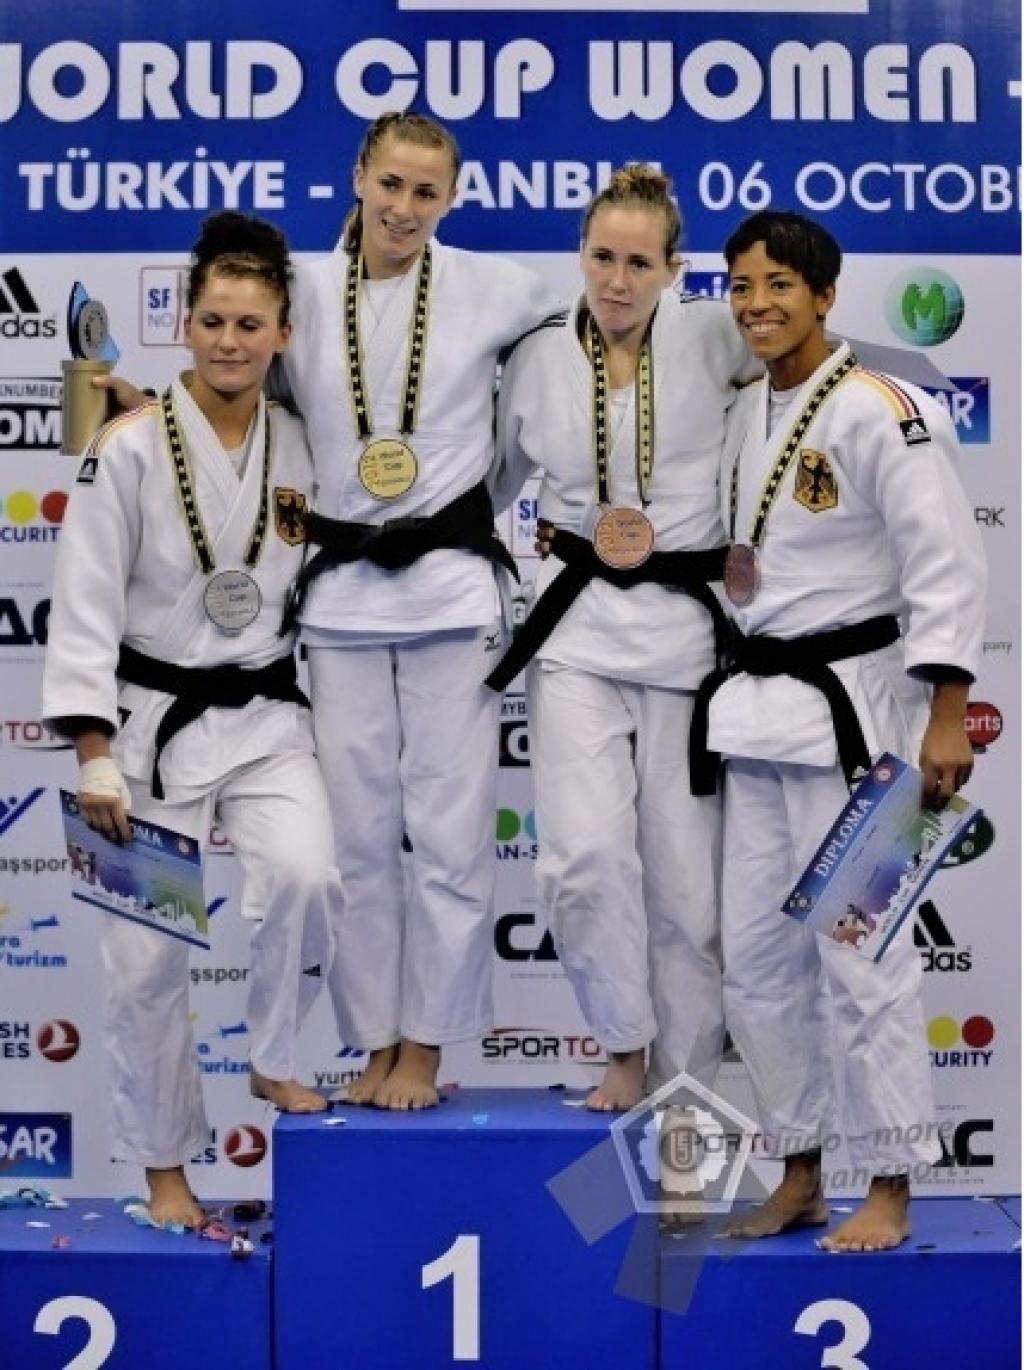 Seven winning nations at first World Cup in Istanbul